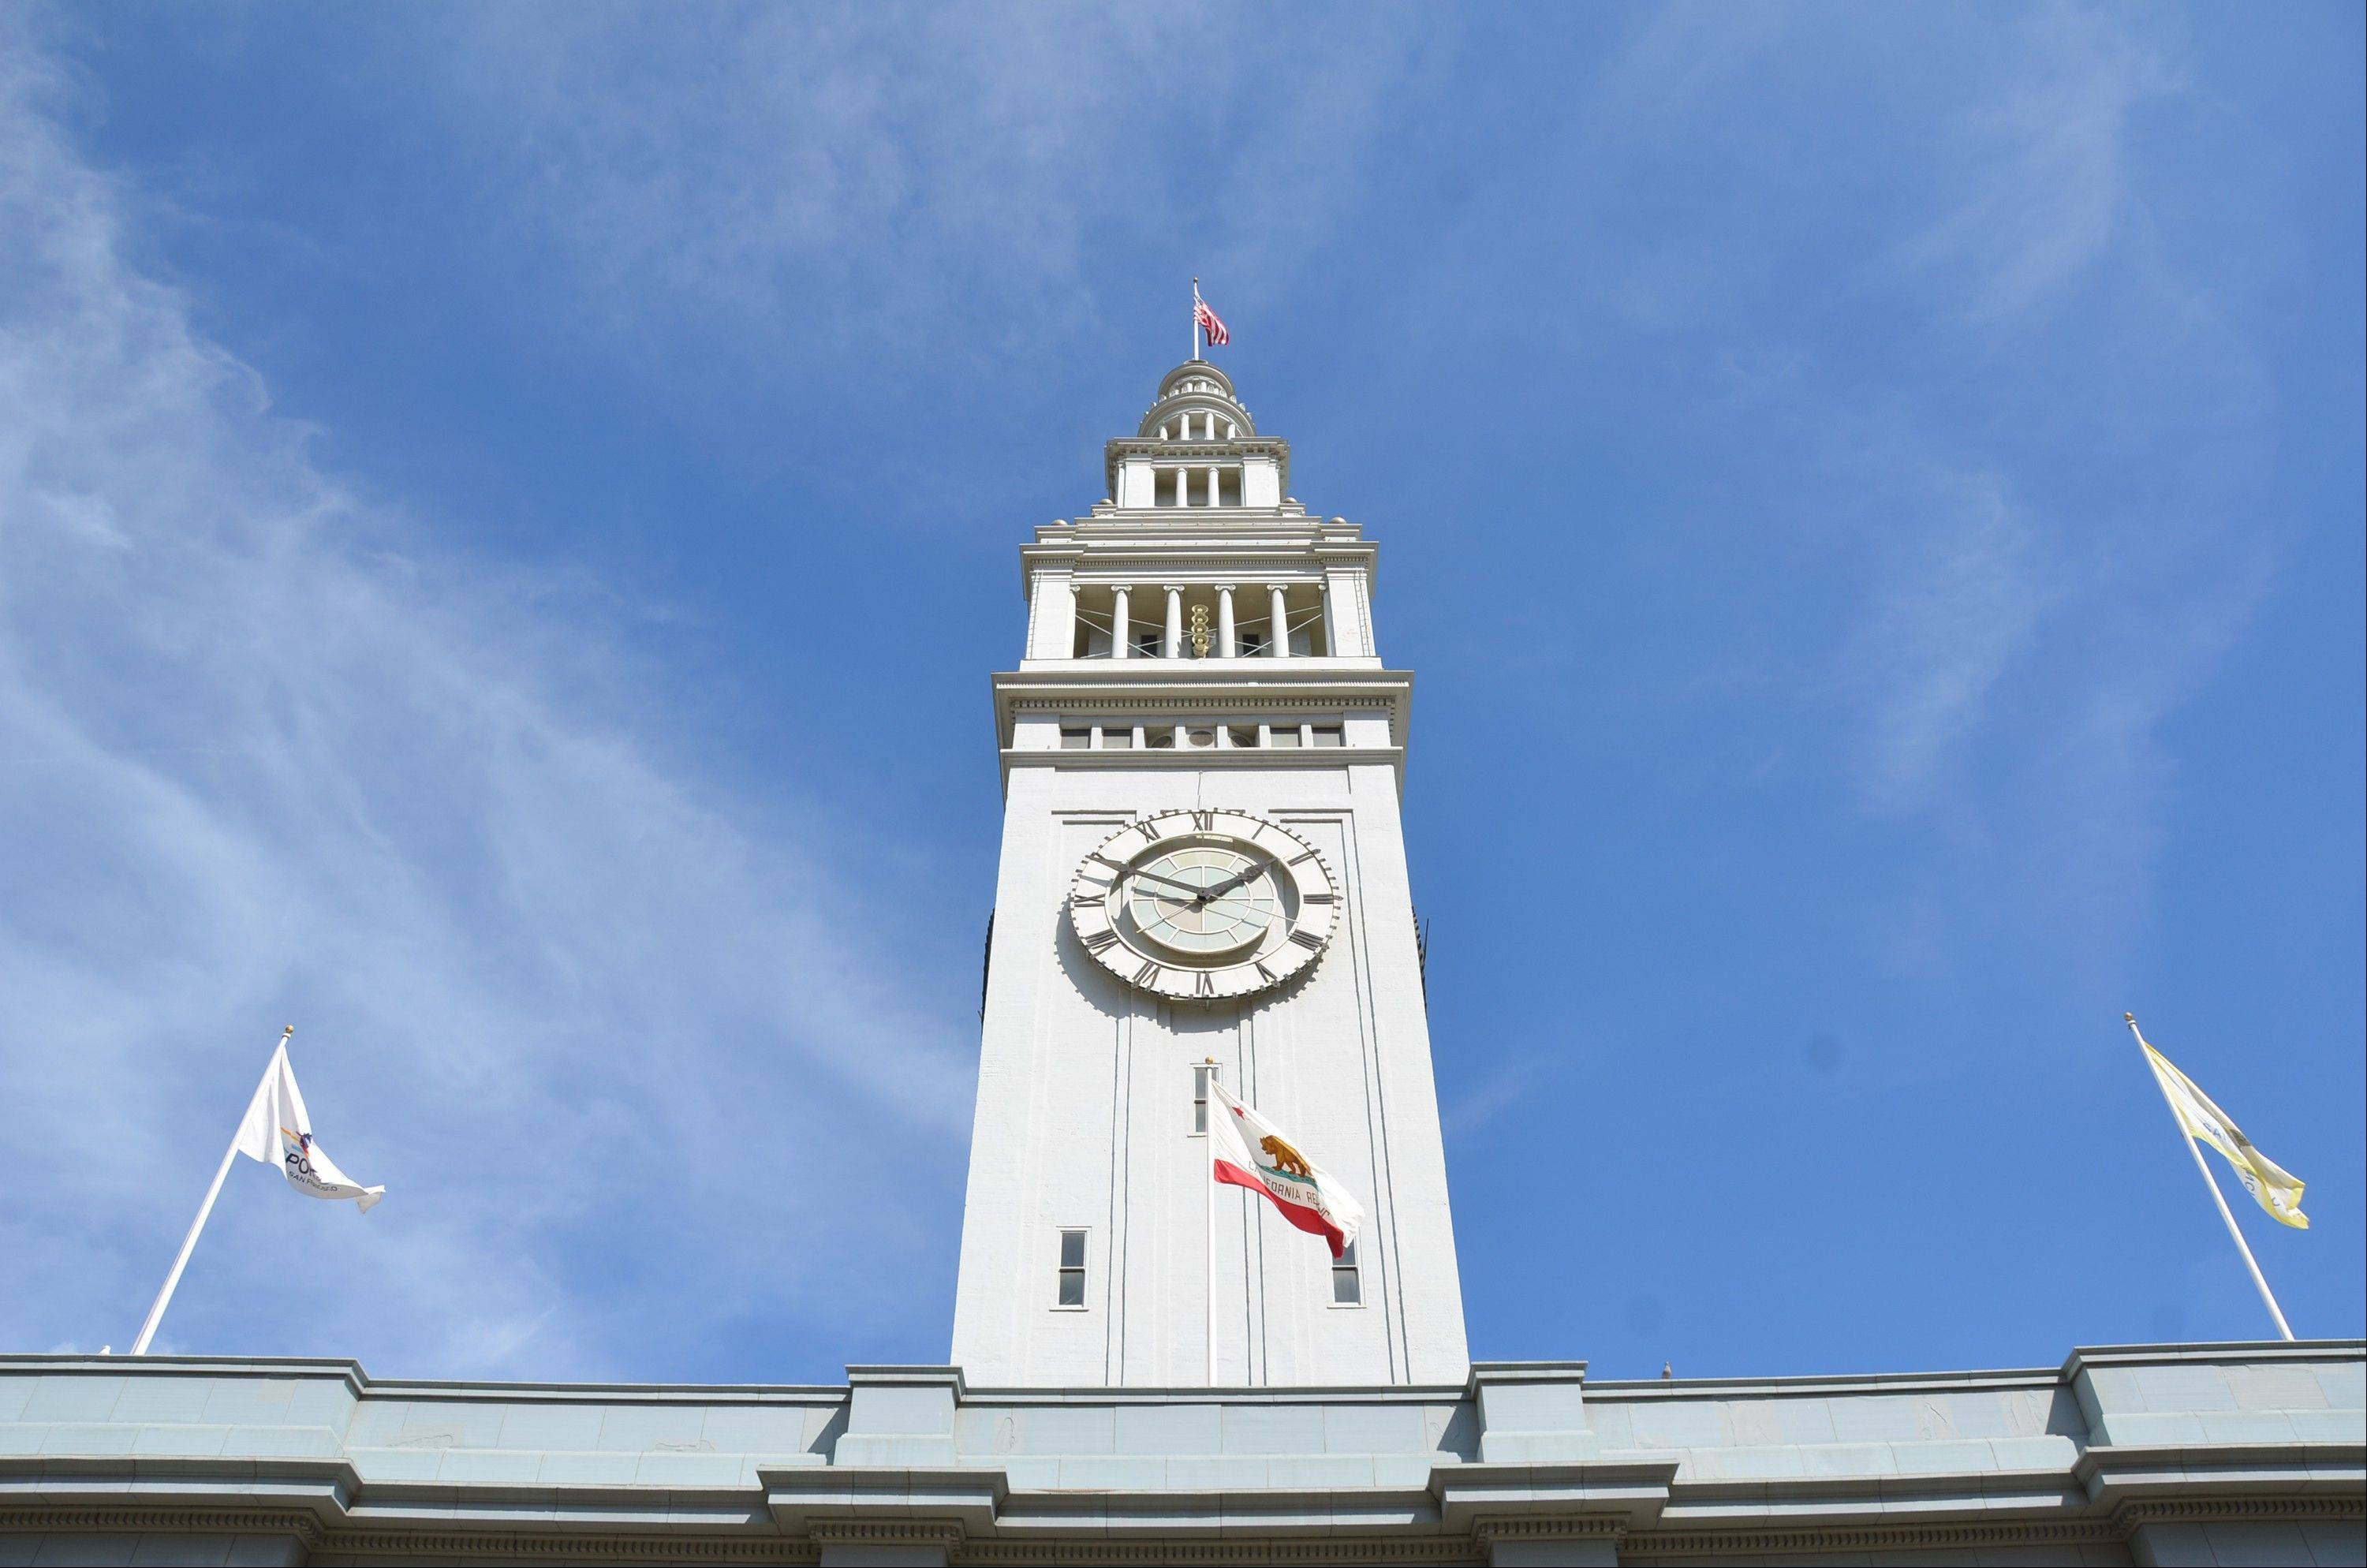 The Streets of San Francisco bike tour includes the Ferry Building on the Embarcadero at the foot of Market Street. The indoor Marketplace has a wide selection of food vendors, cafes and shops.